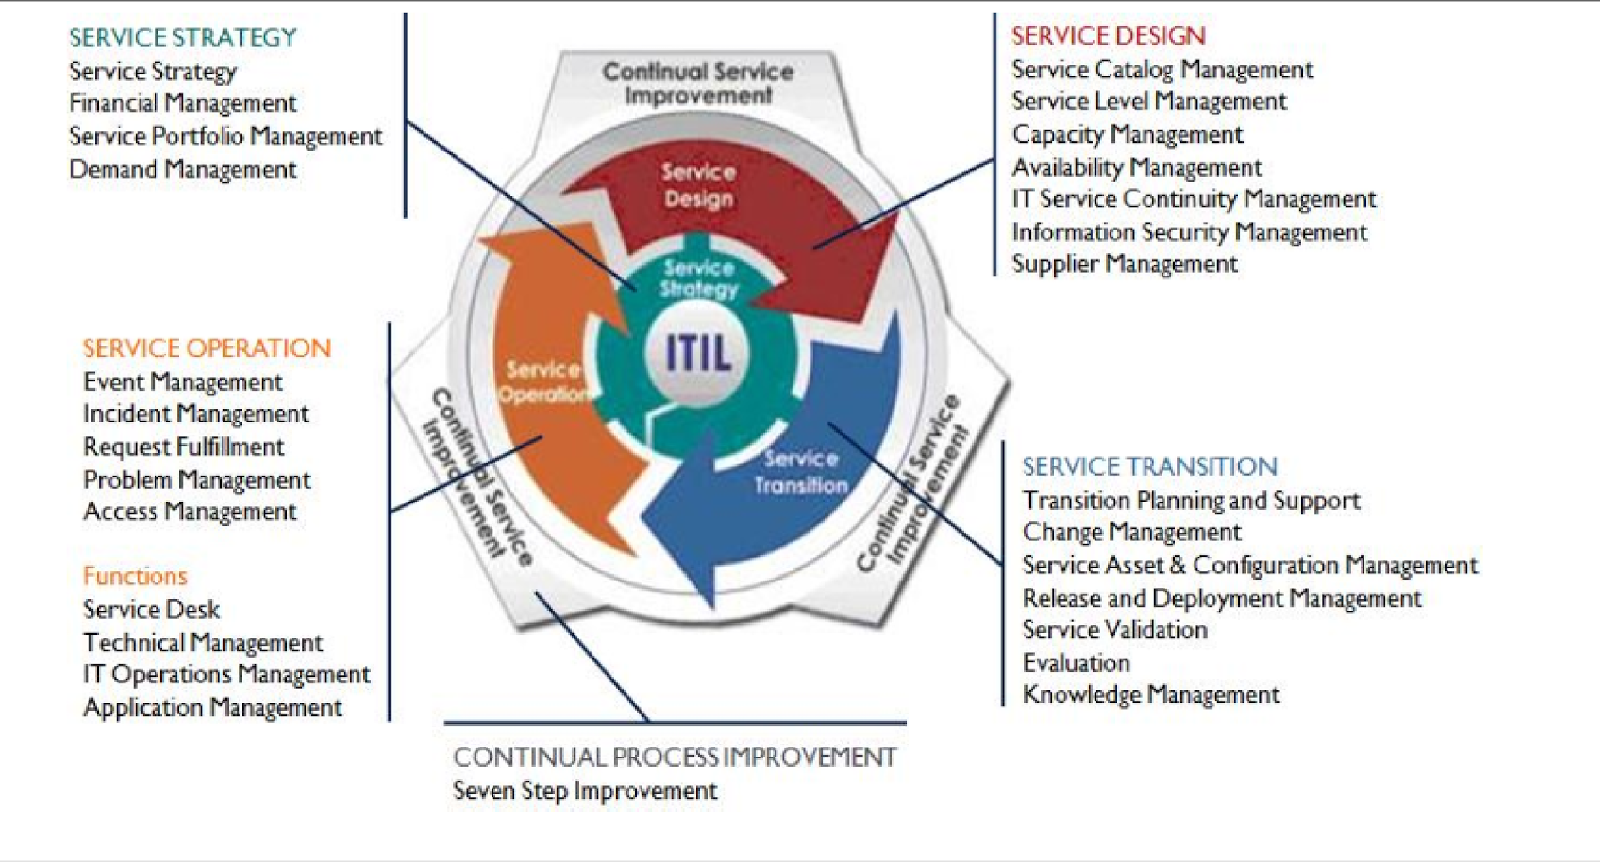 Technology Management Image: Ohood311: Information Technology Services Management And